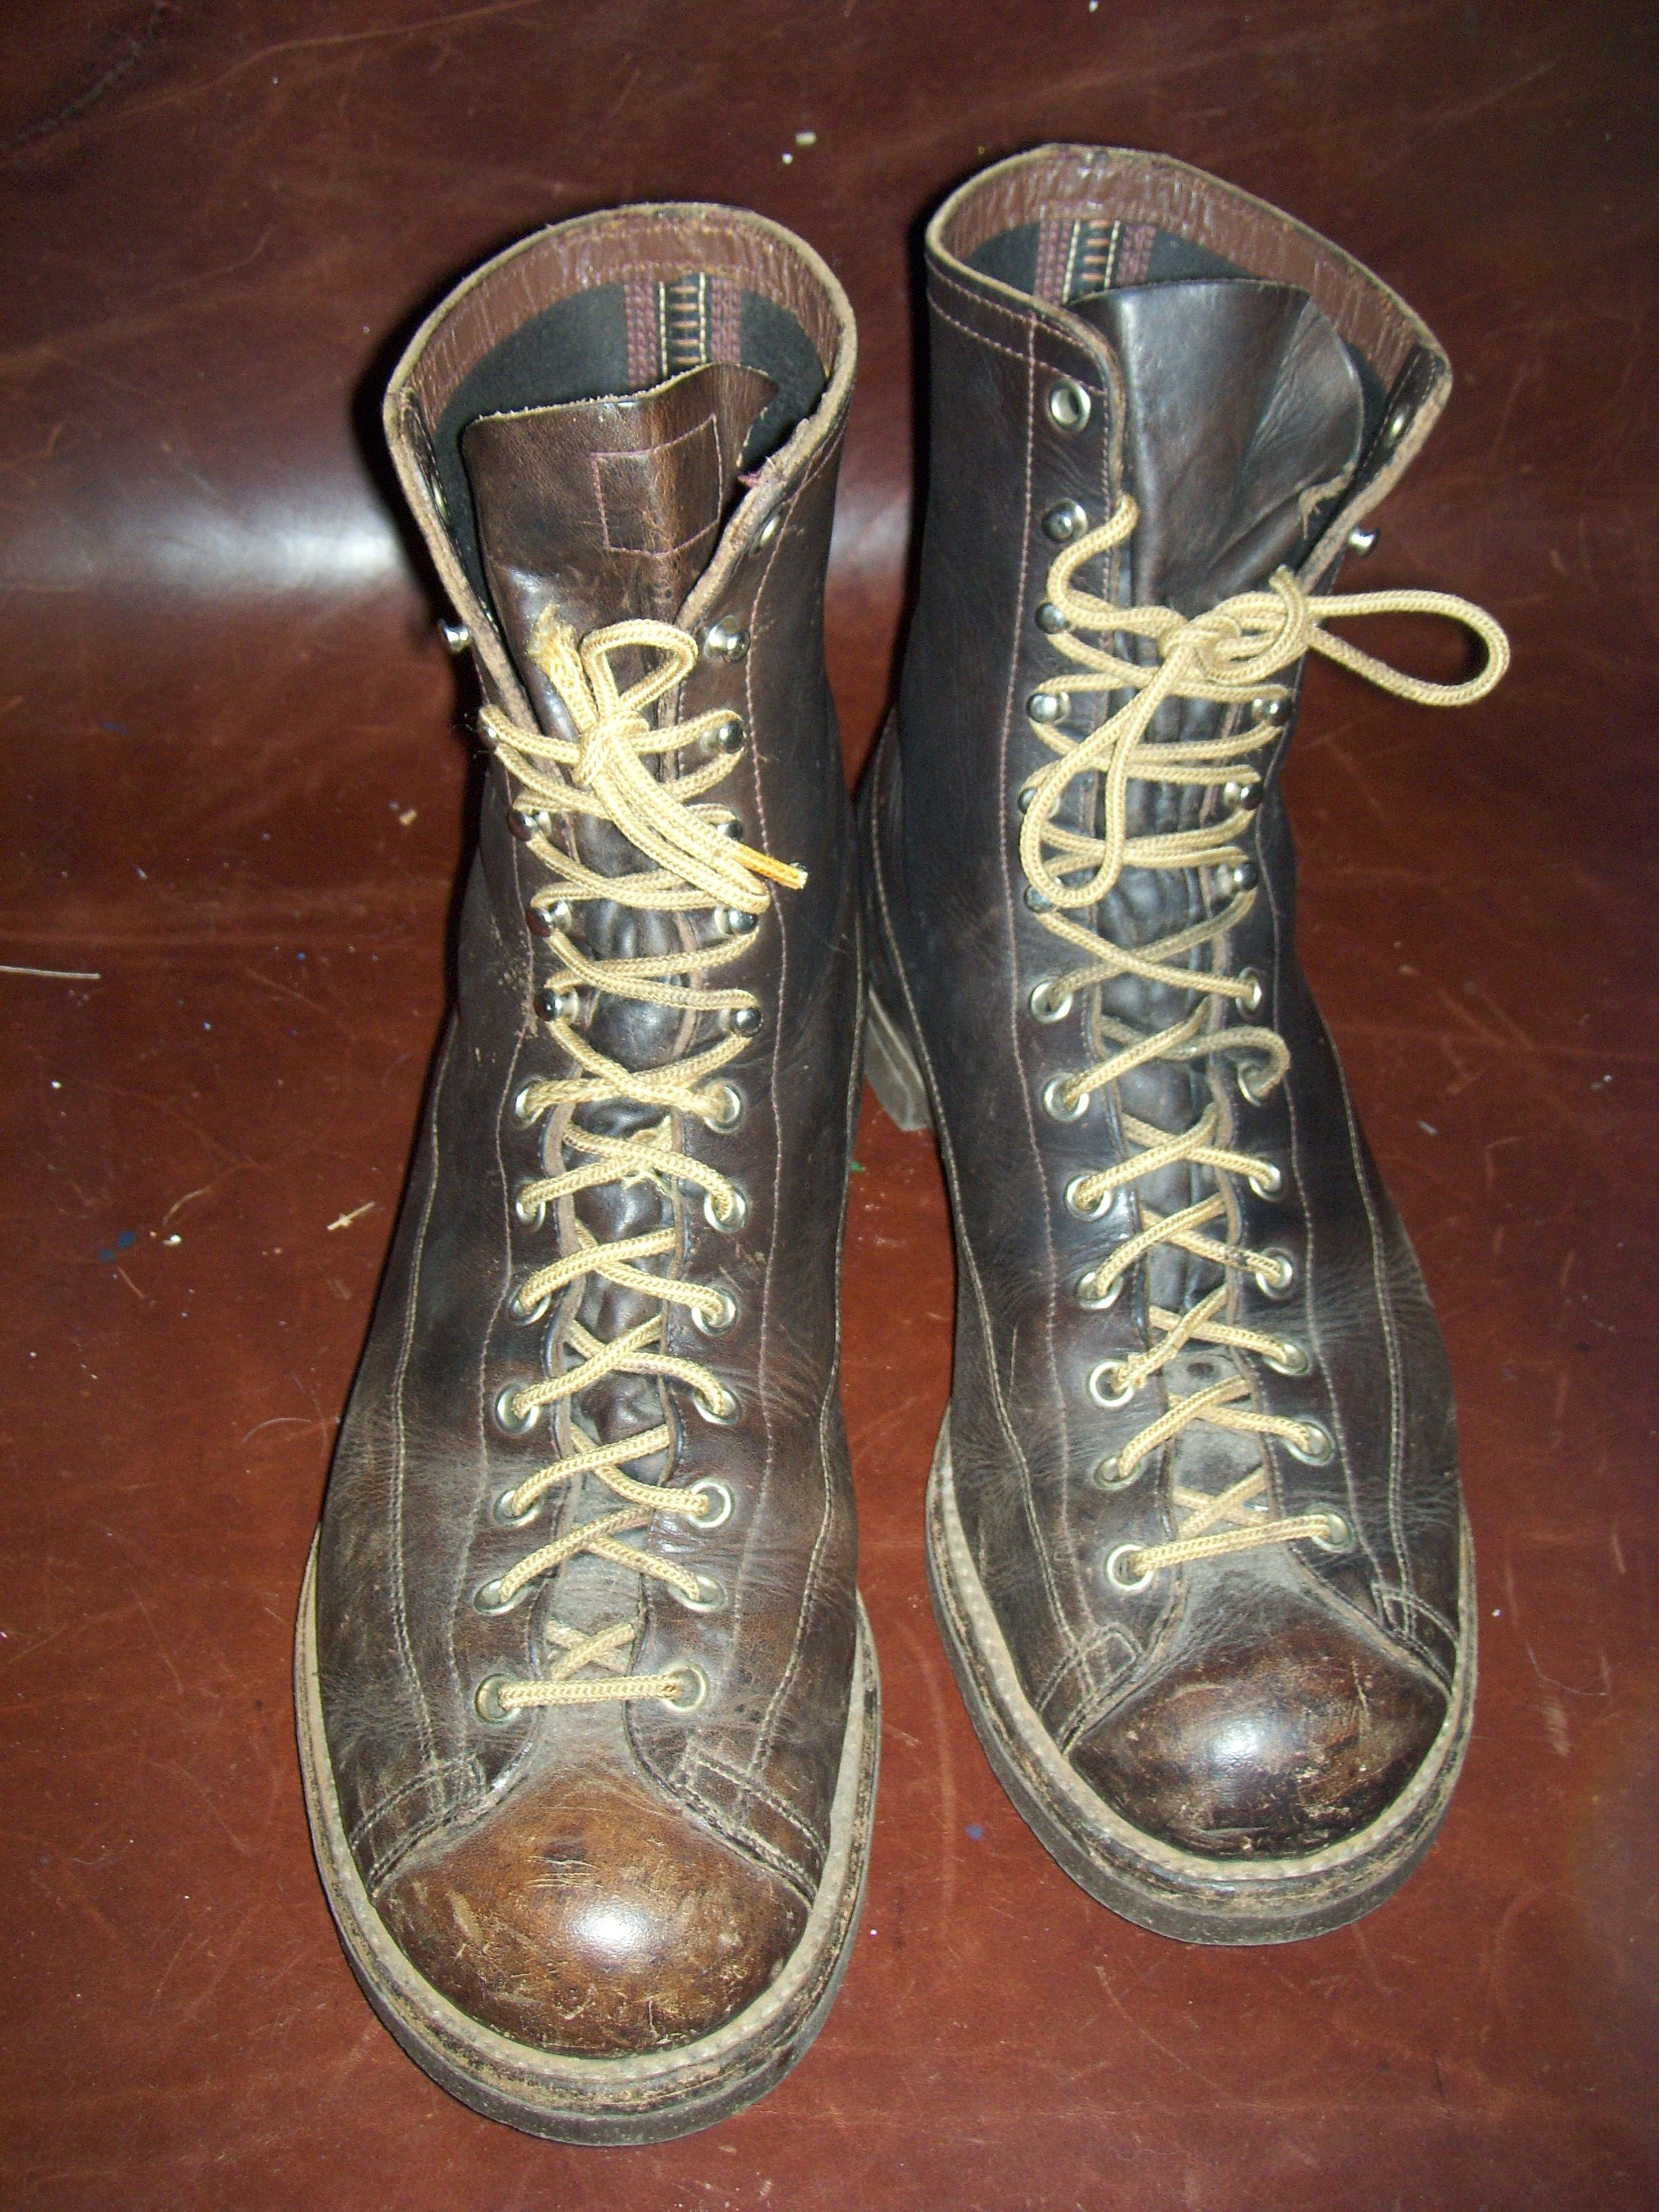 Vintage Red Wing Lace To Toe Boots Boots Vintage Boots Shoe Boots